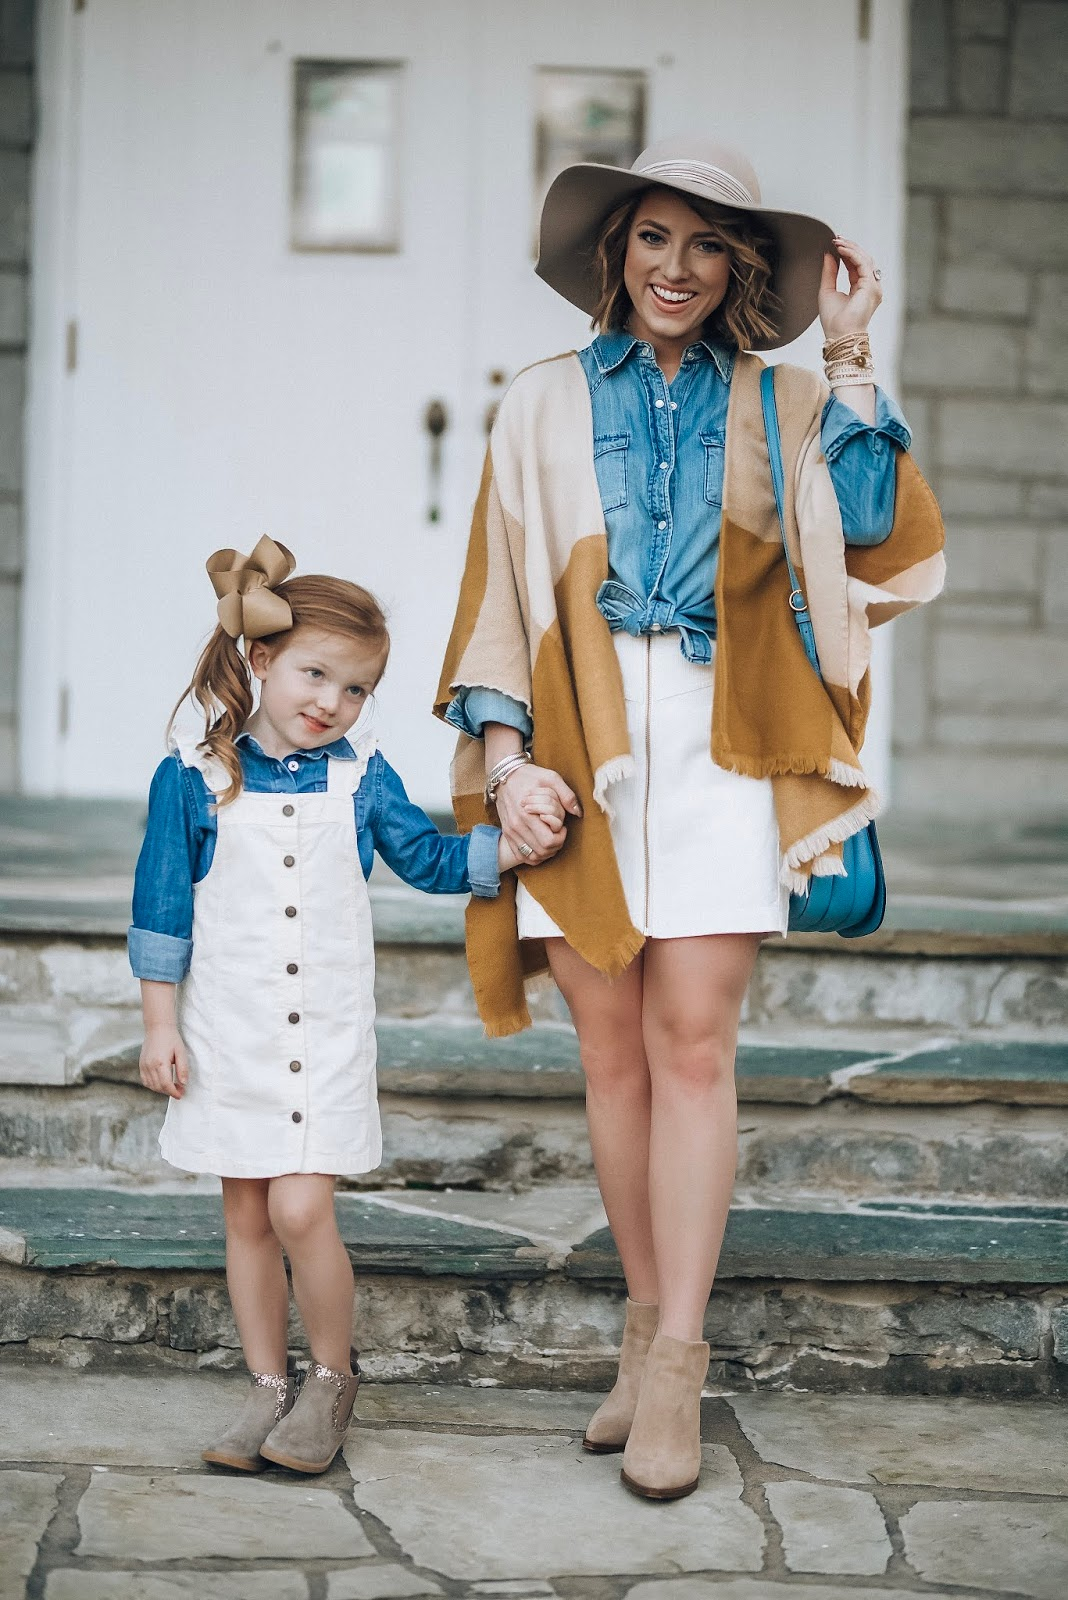 Target Style: Neutrals For Fall - Neutral Fall Looks for both Women and Kids - Something Delightful Blog #fallstyle #targetstyle